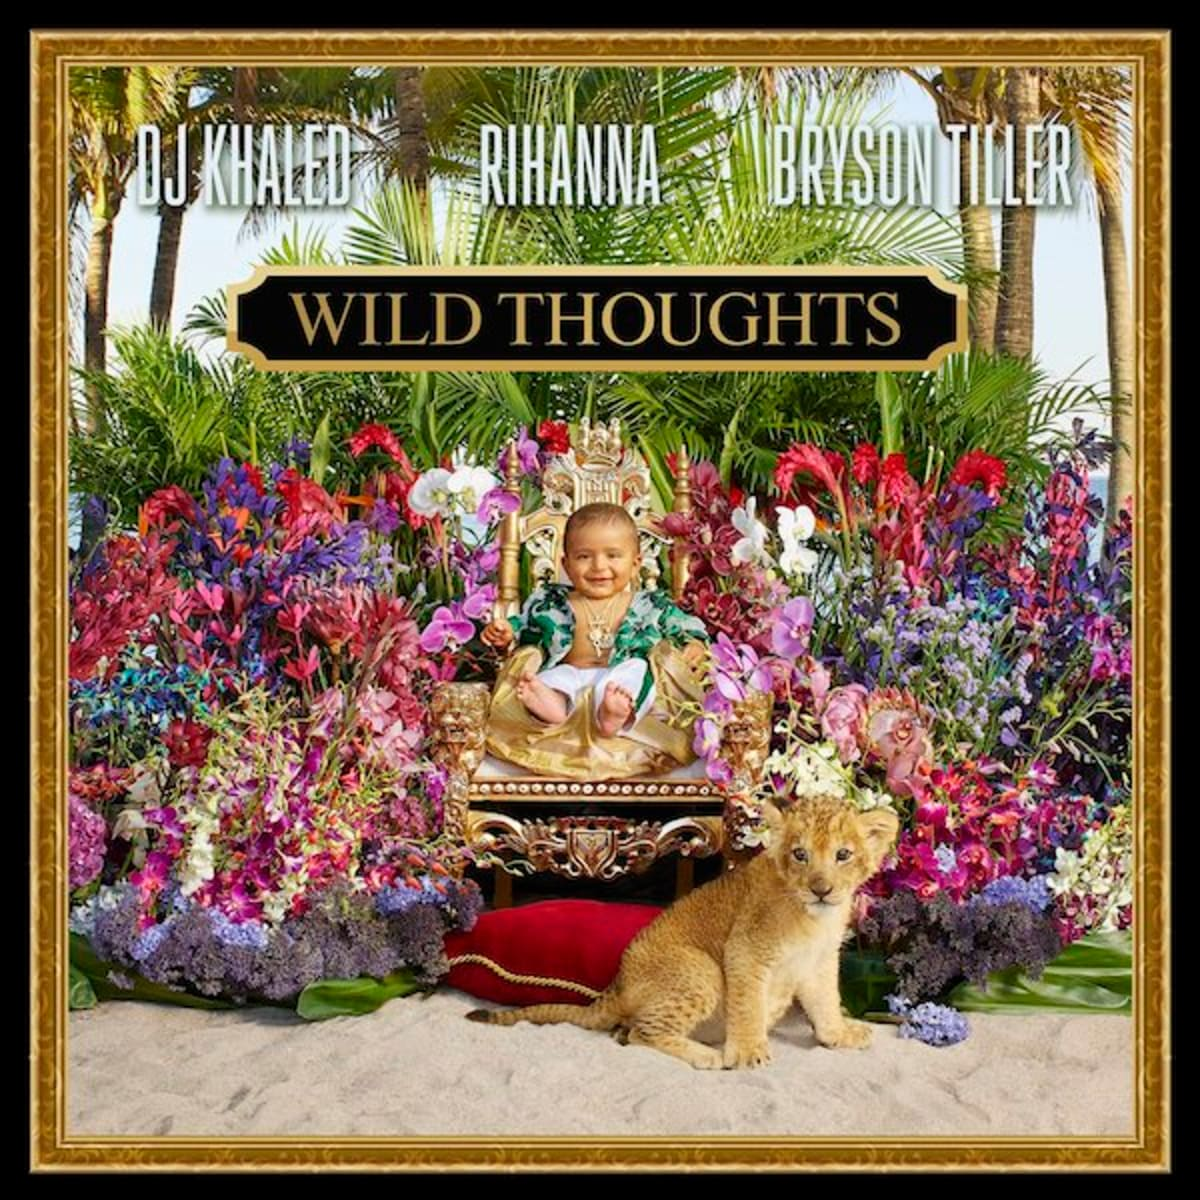 .@DJKhaled delivers his latest single 'Wild Thoughts,' f/ @Rihanna and @BrysonTiller. https://t.co/qLEluqtbD8 https://t.co/xzIGdQNovc